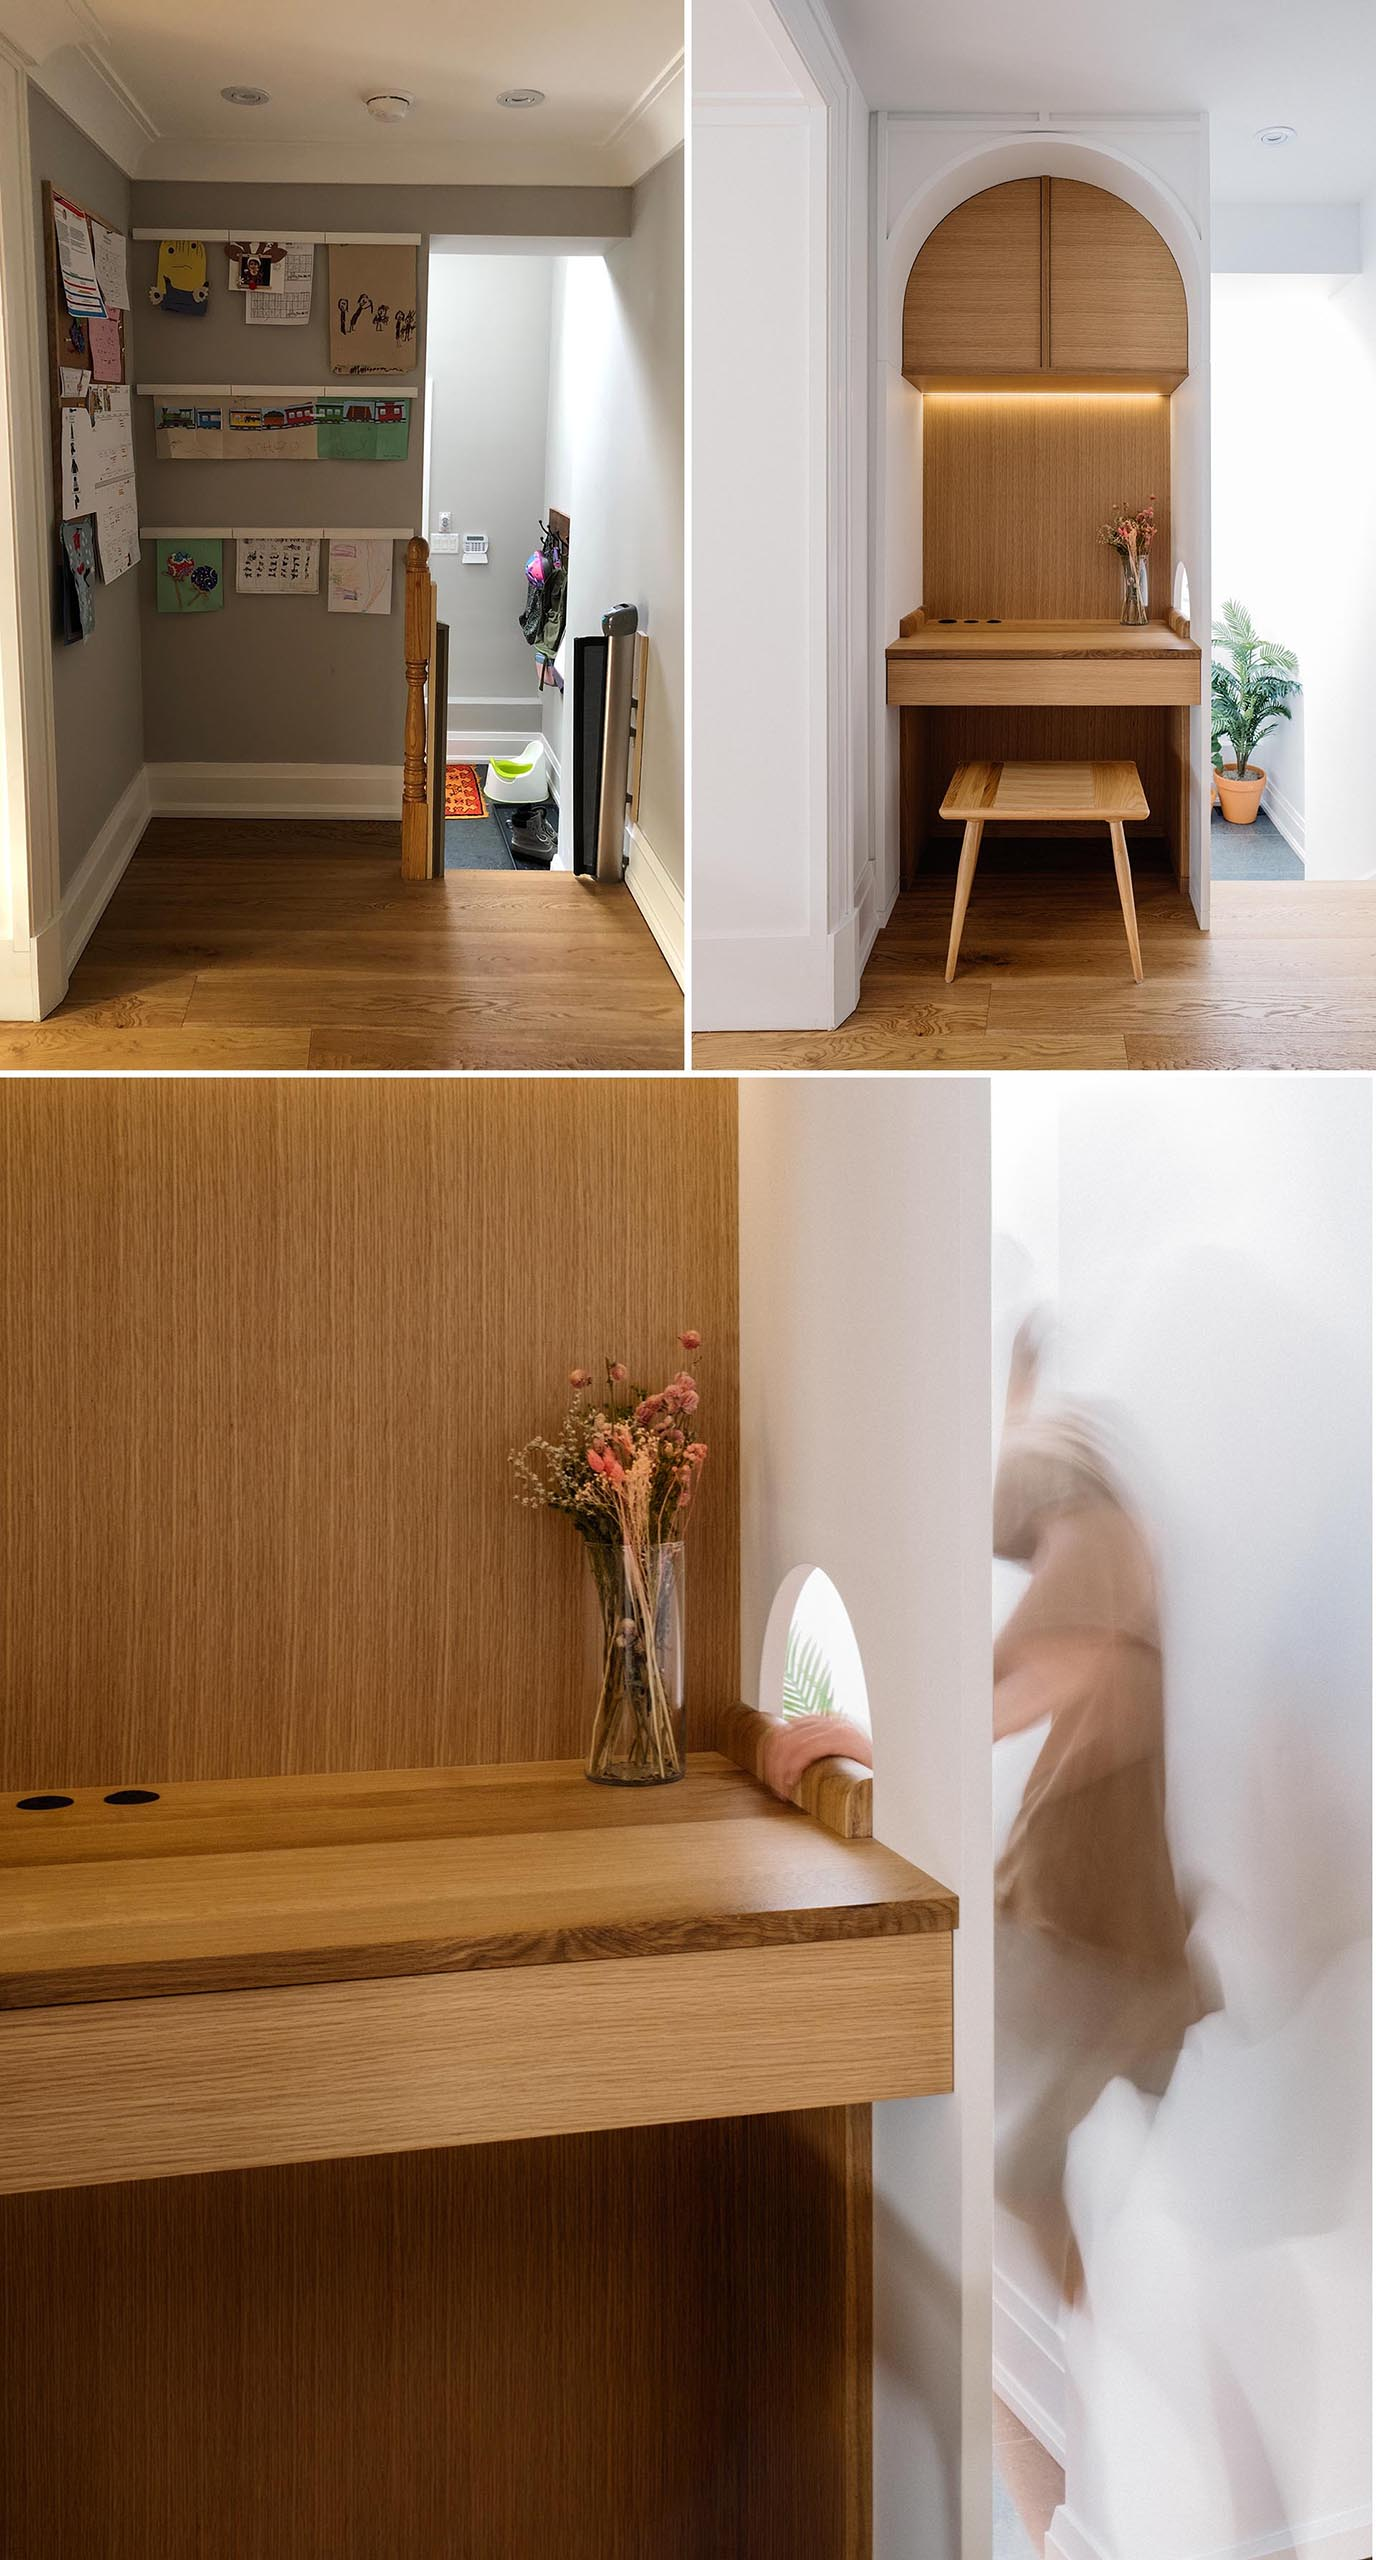 An awkward space was transformed into a built-in desk for working at home.